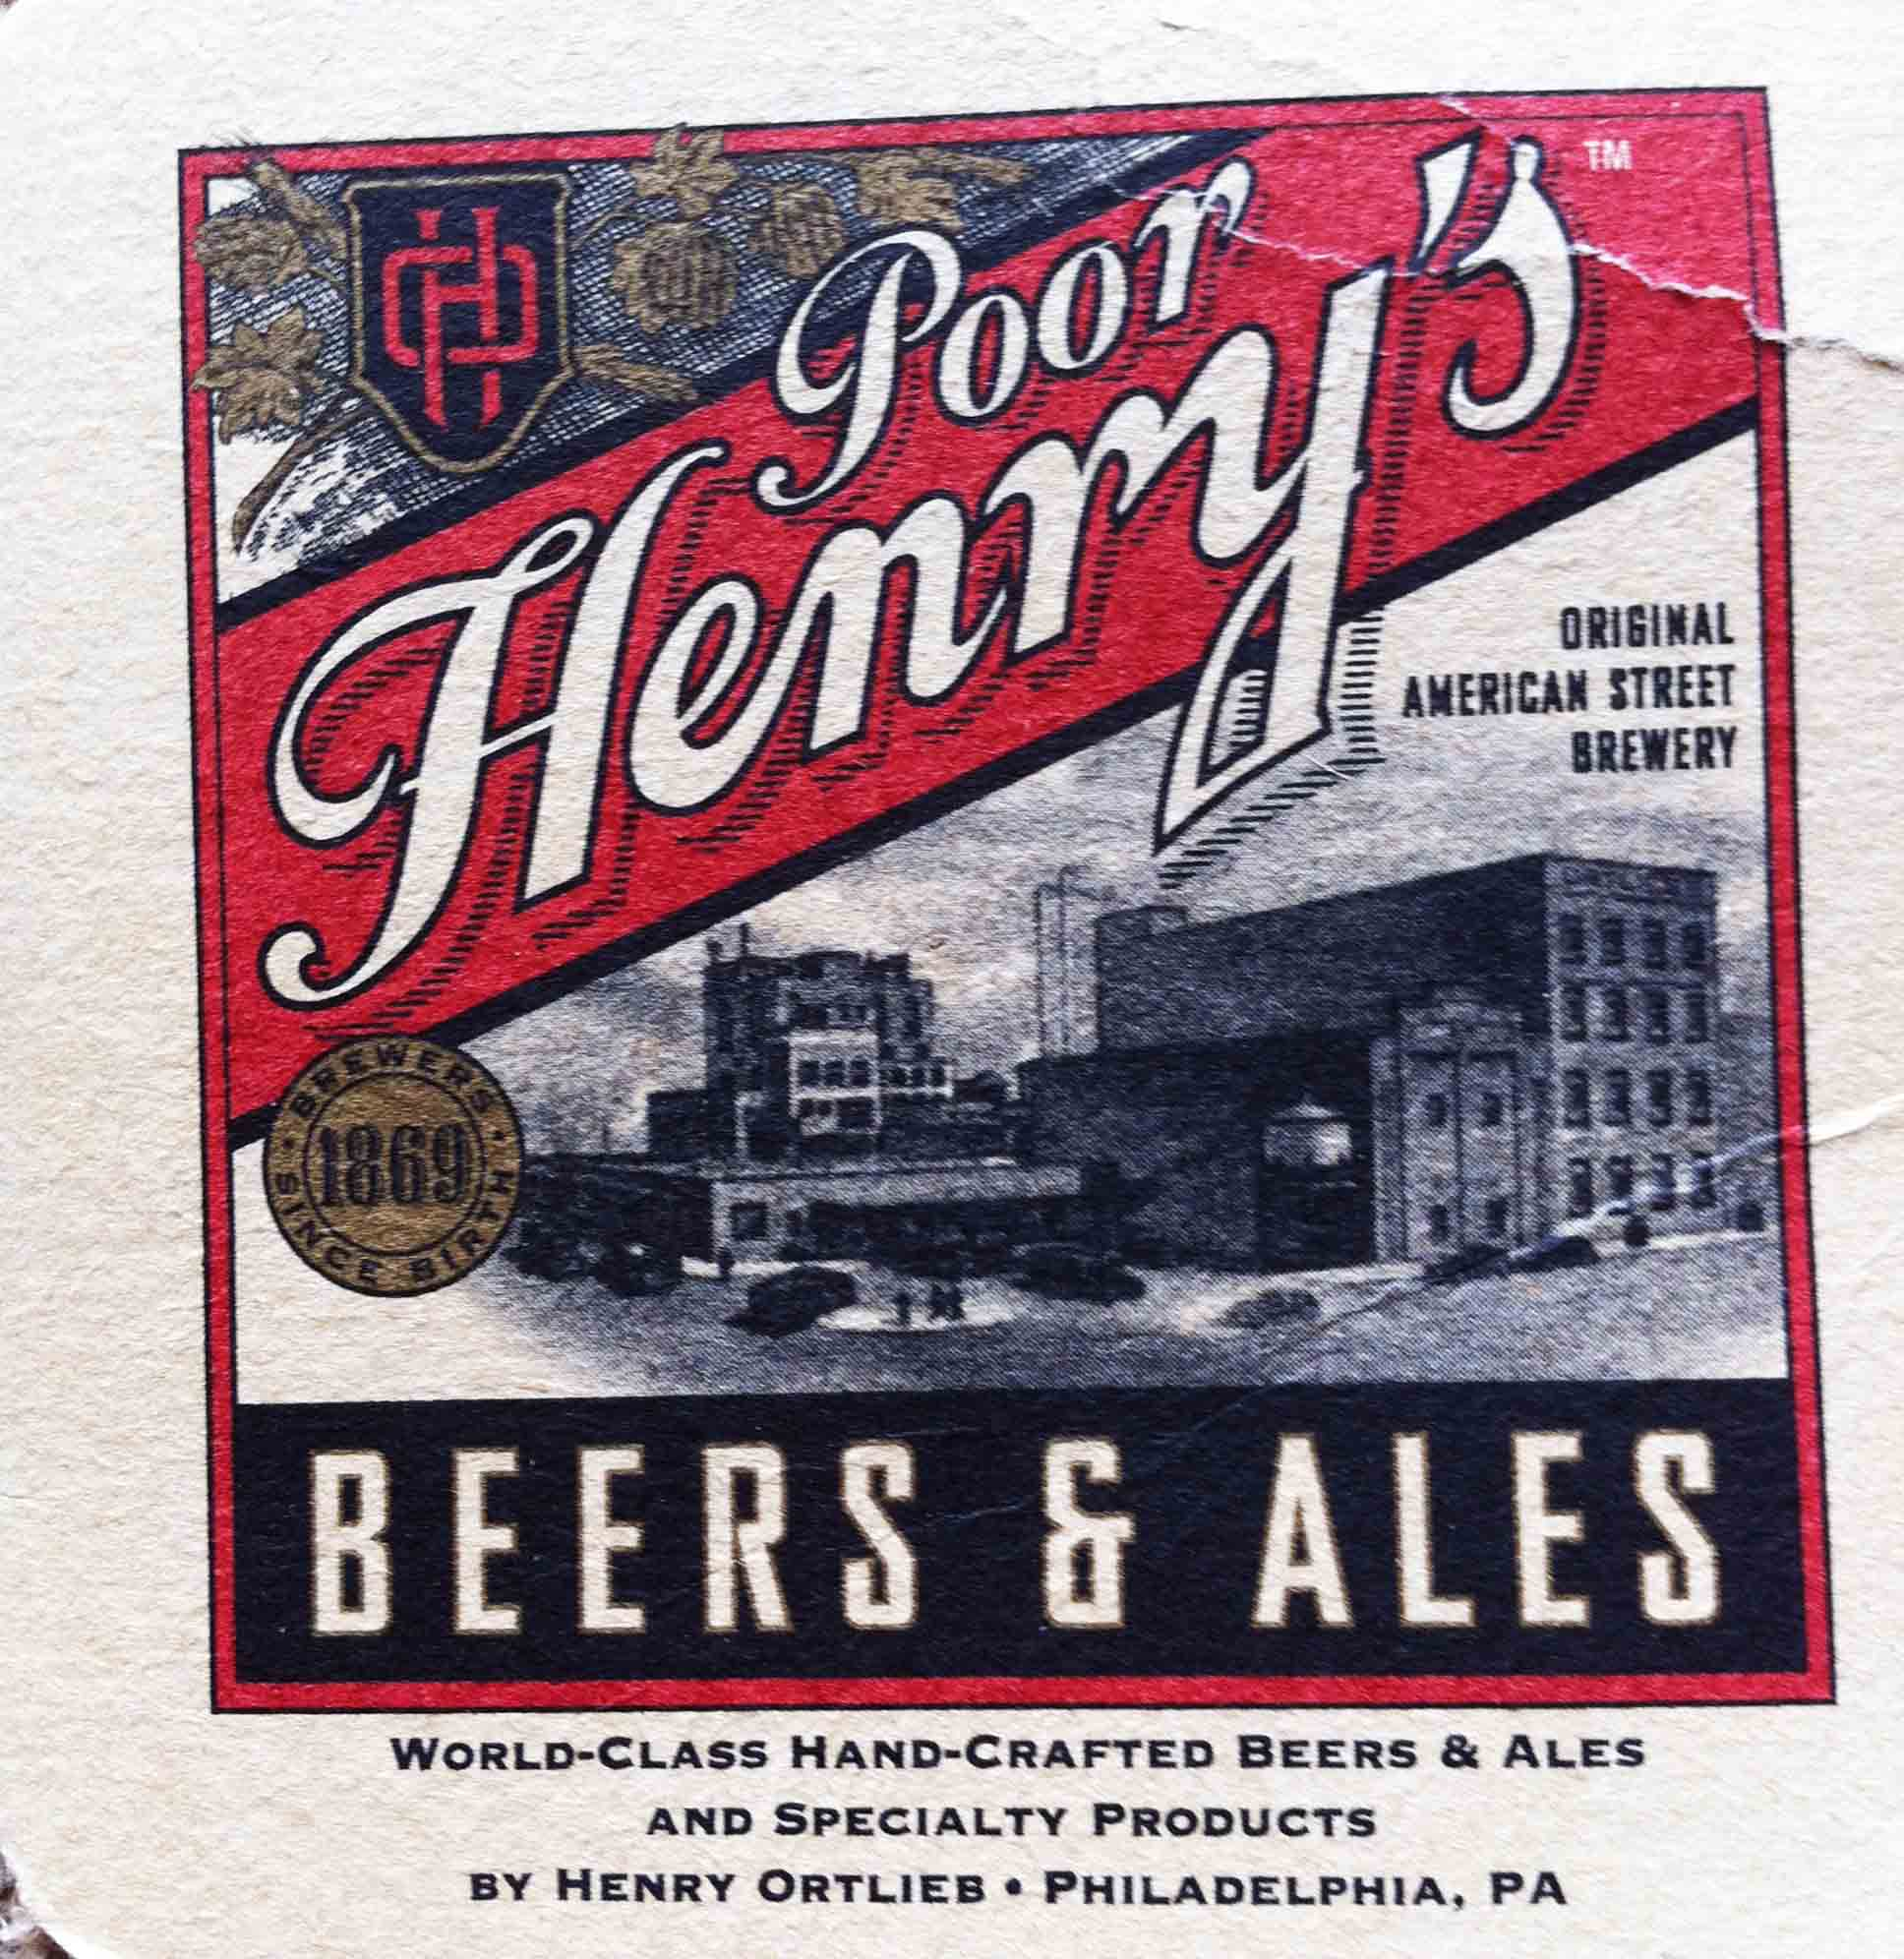 44. Poor Henry's Brewery and Grille, Philadelphia PA 2003